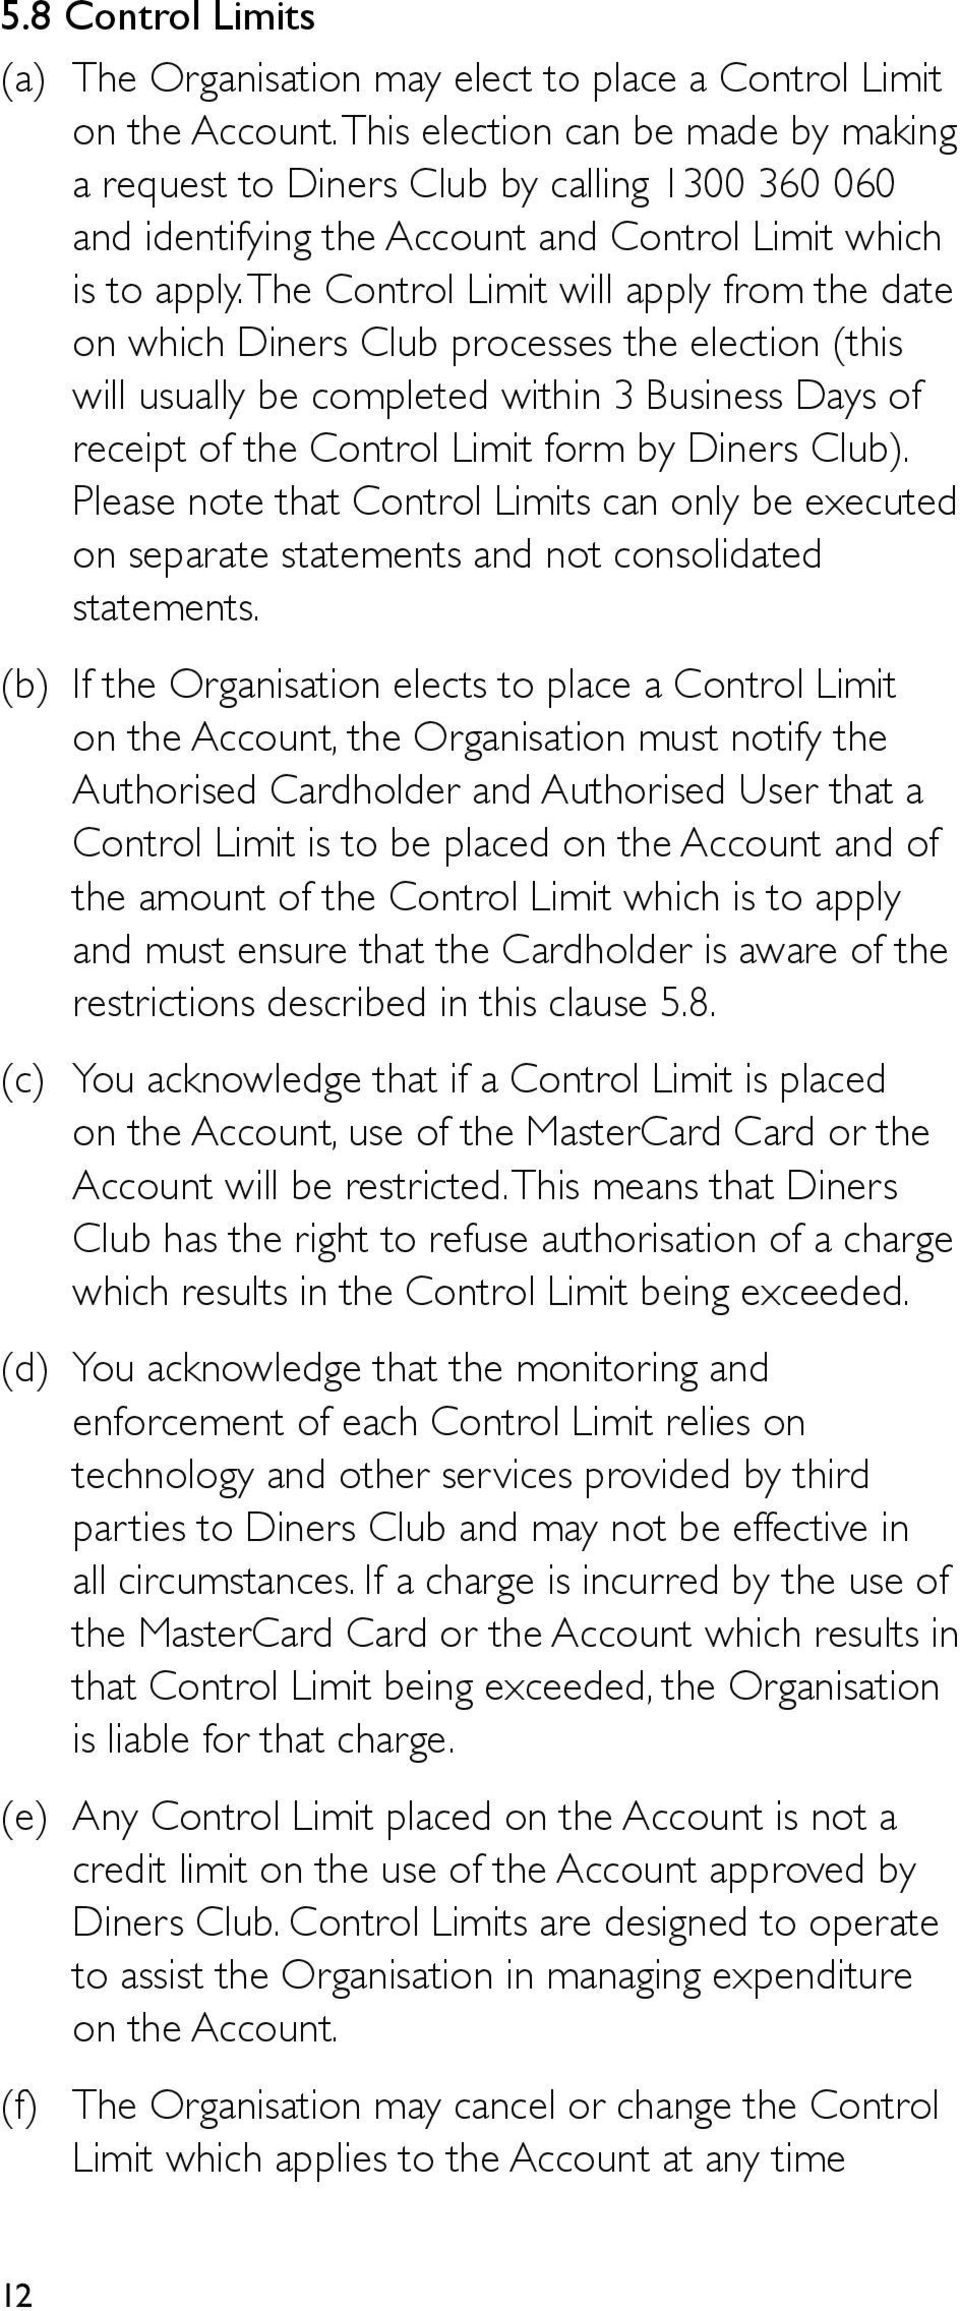 The Control Limit will apply from the date on which Diners Club processes the election (this will usually be completed within 3 Business Days of receipt of the Control Limit form by Diners Club).